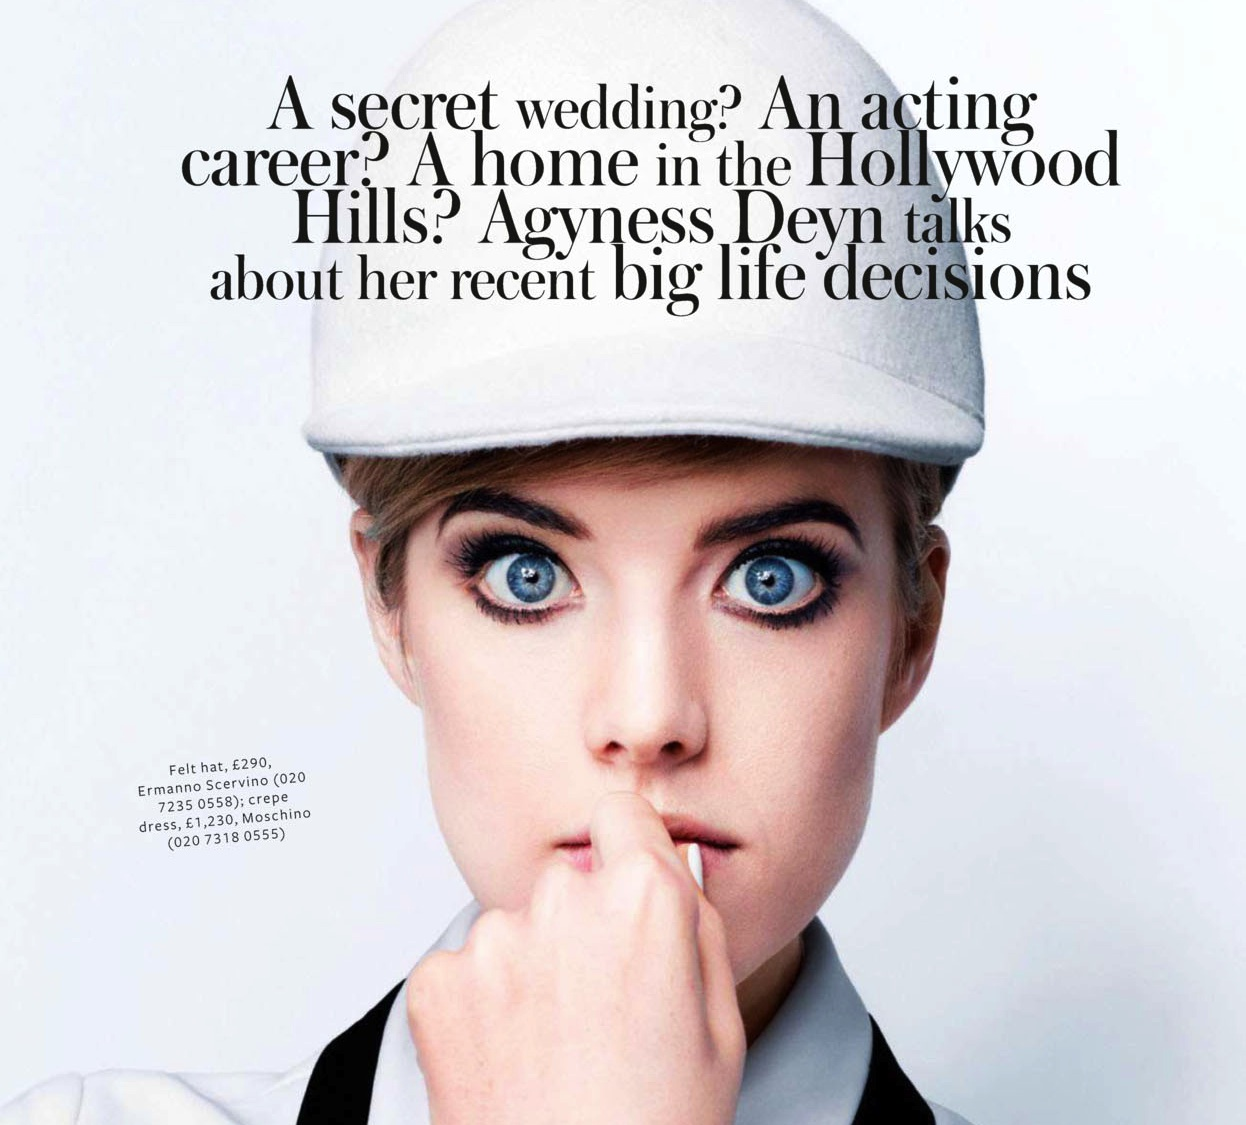 Agyness Deyn's quote #2